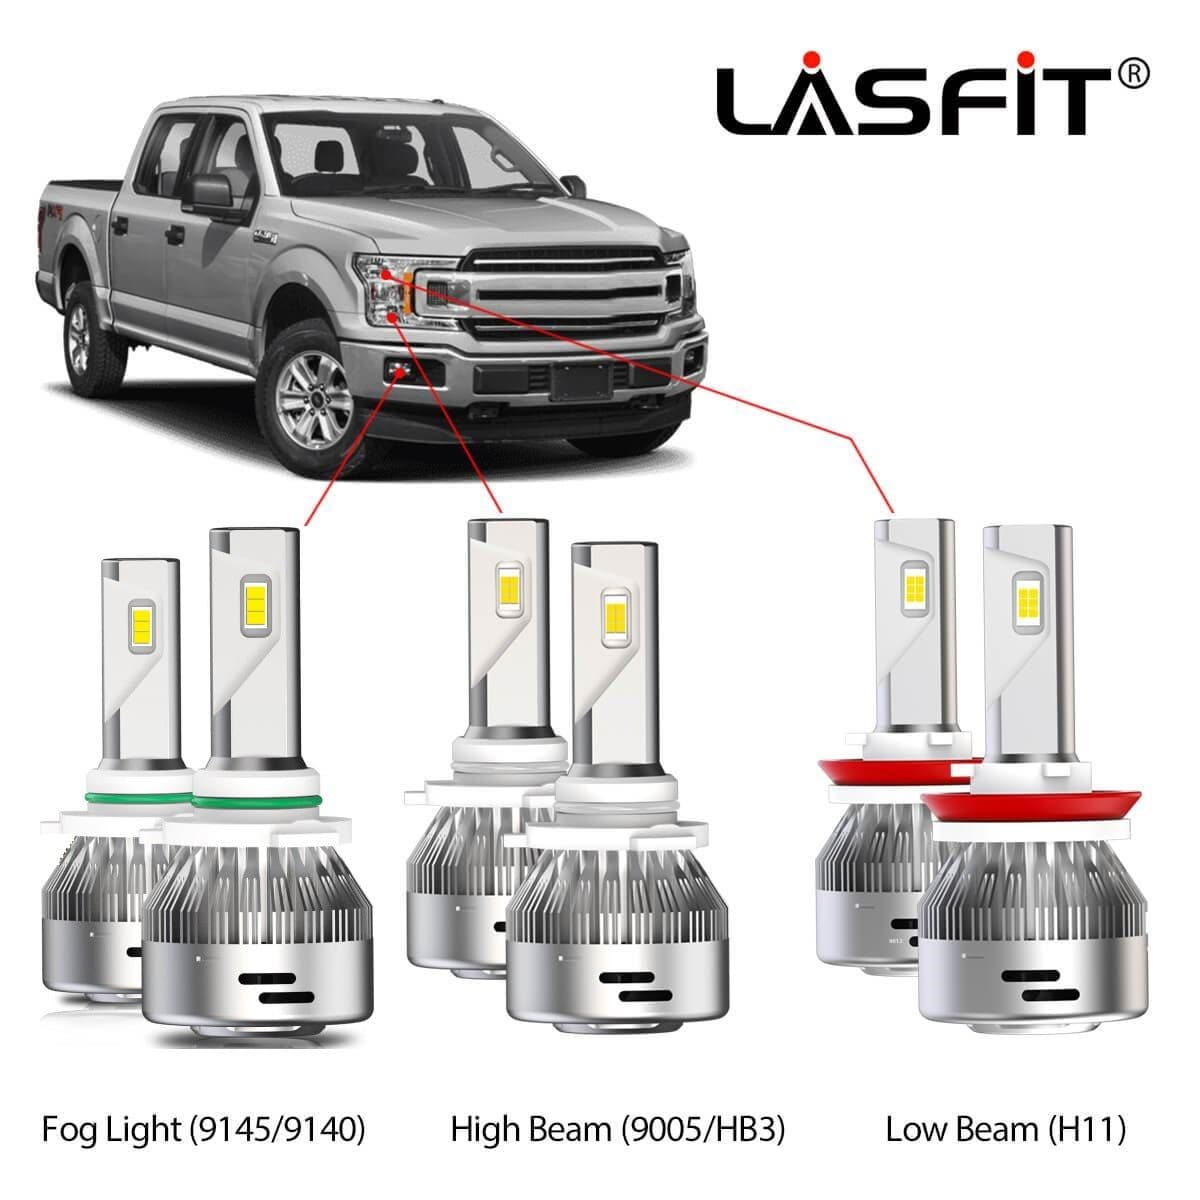 LASFIT 9005 LED Headlight High Beam for F-150 2015-2020 Super Bright 6000K White